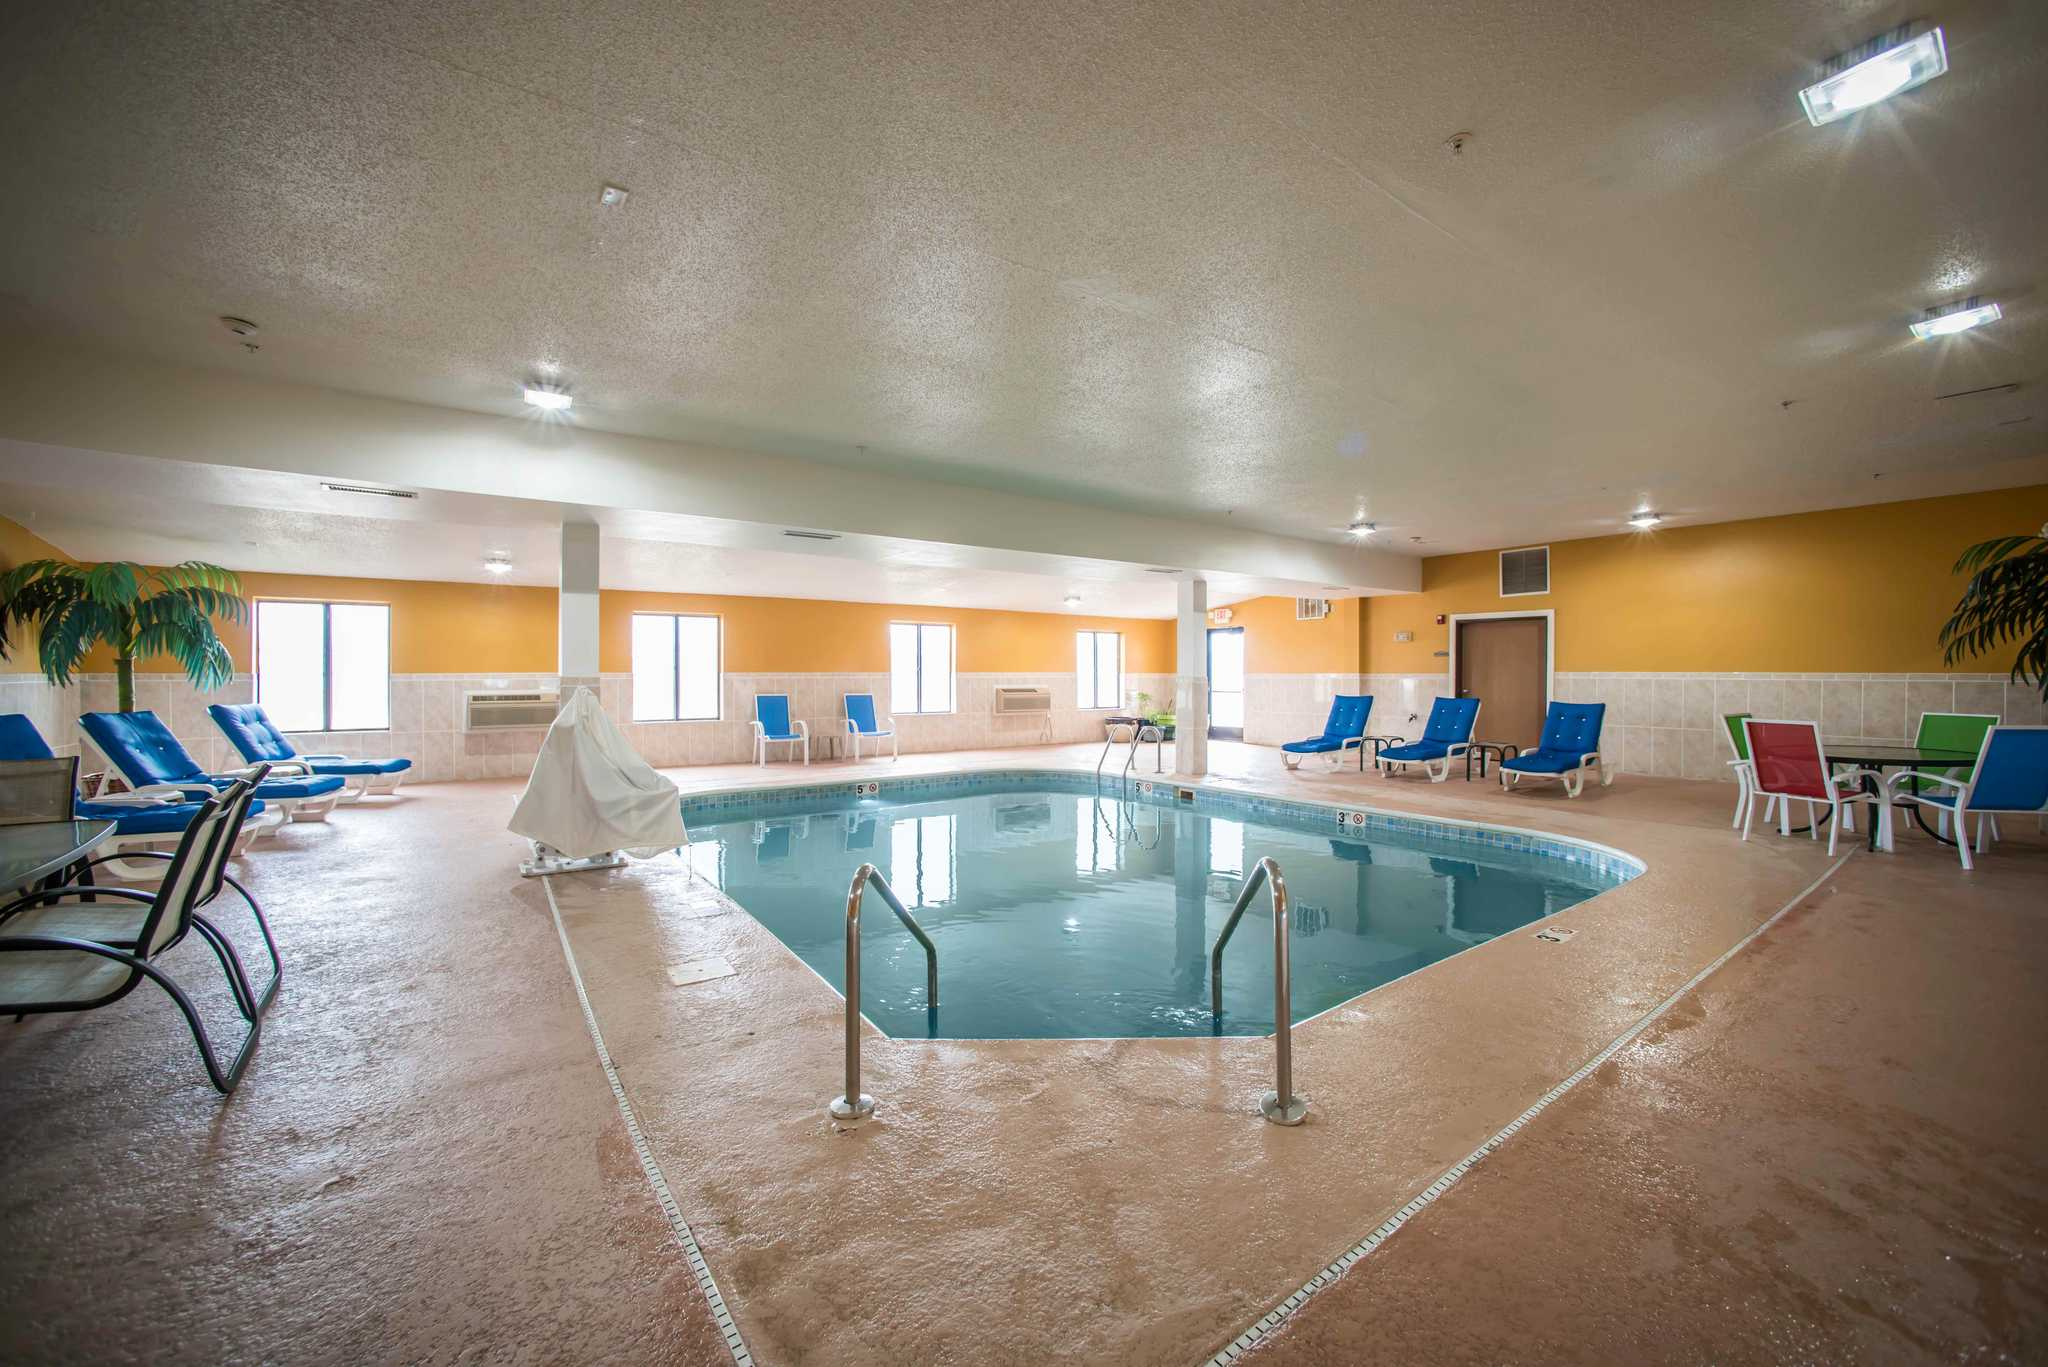 Quality Inn – Hotel in Litchfield, IL Near Litchfield Museum and Route 66 Welcome Center The award-winning Quality Inn ® hotel in Litchfield near the Ariston Cafe and the Litchfield Museum and Route 66 Welcome Center lets you relax and focus on the people and experiences you came for/5().